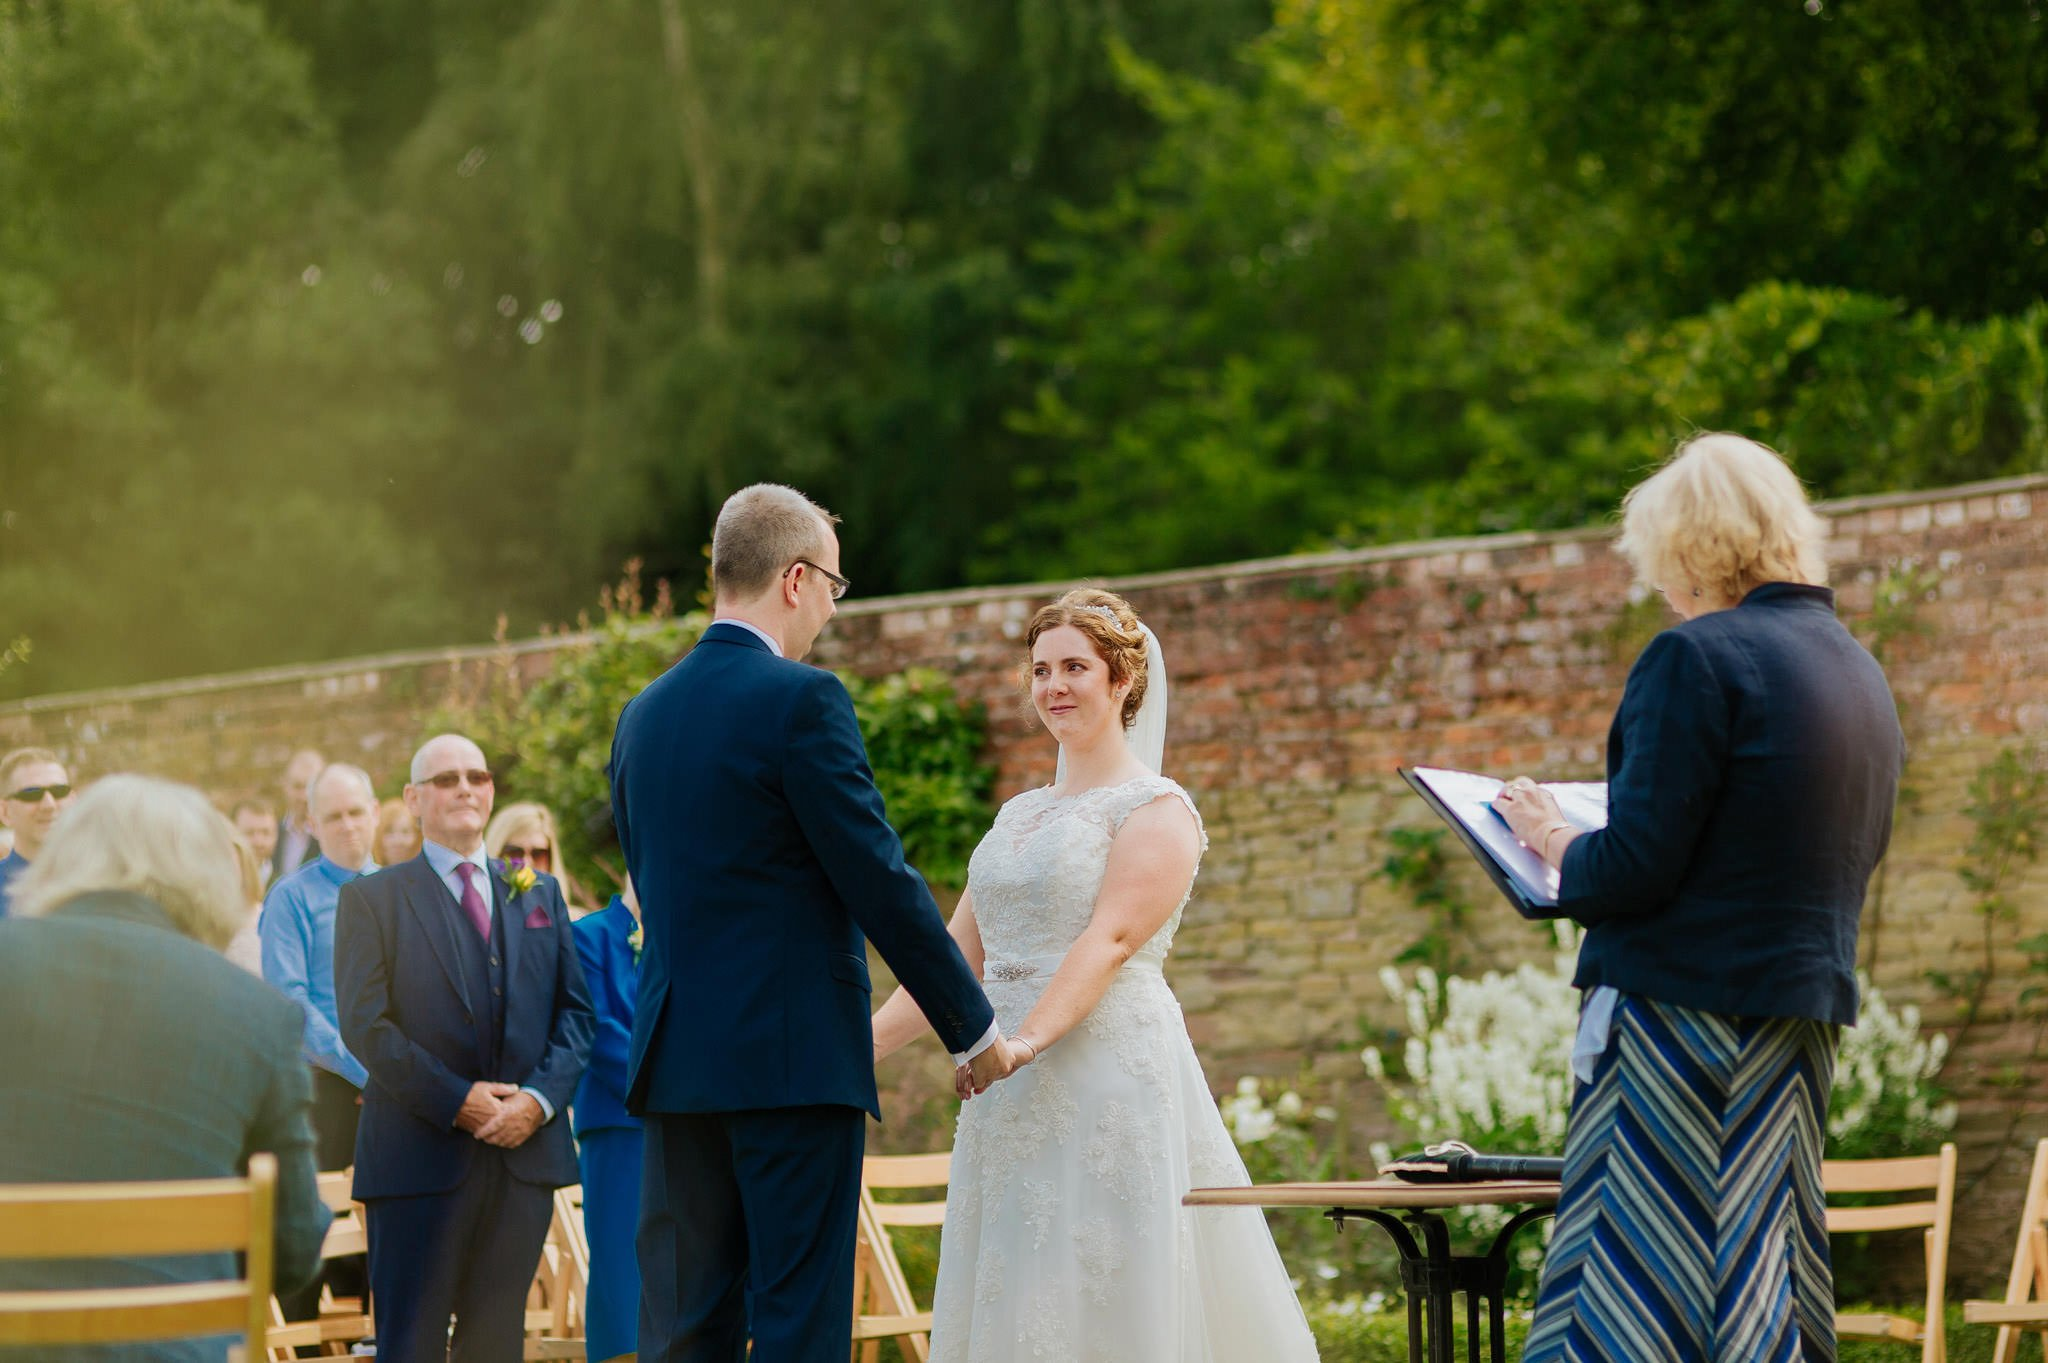 Wedding photography at Homme House in Herefordshire, West Midlands 32